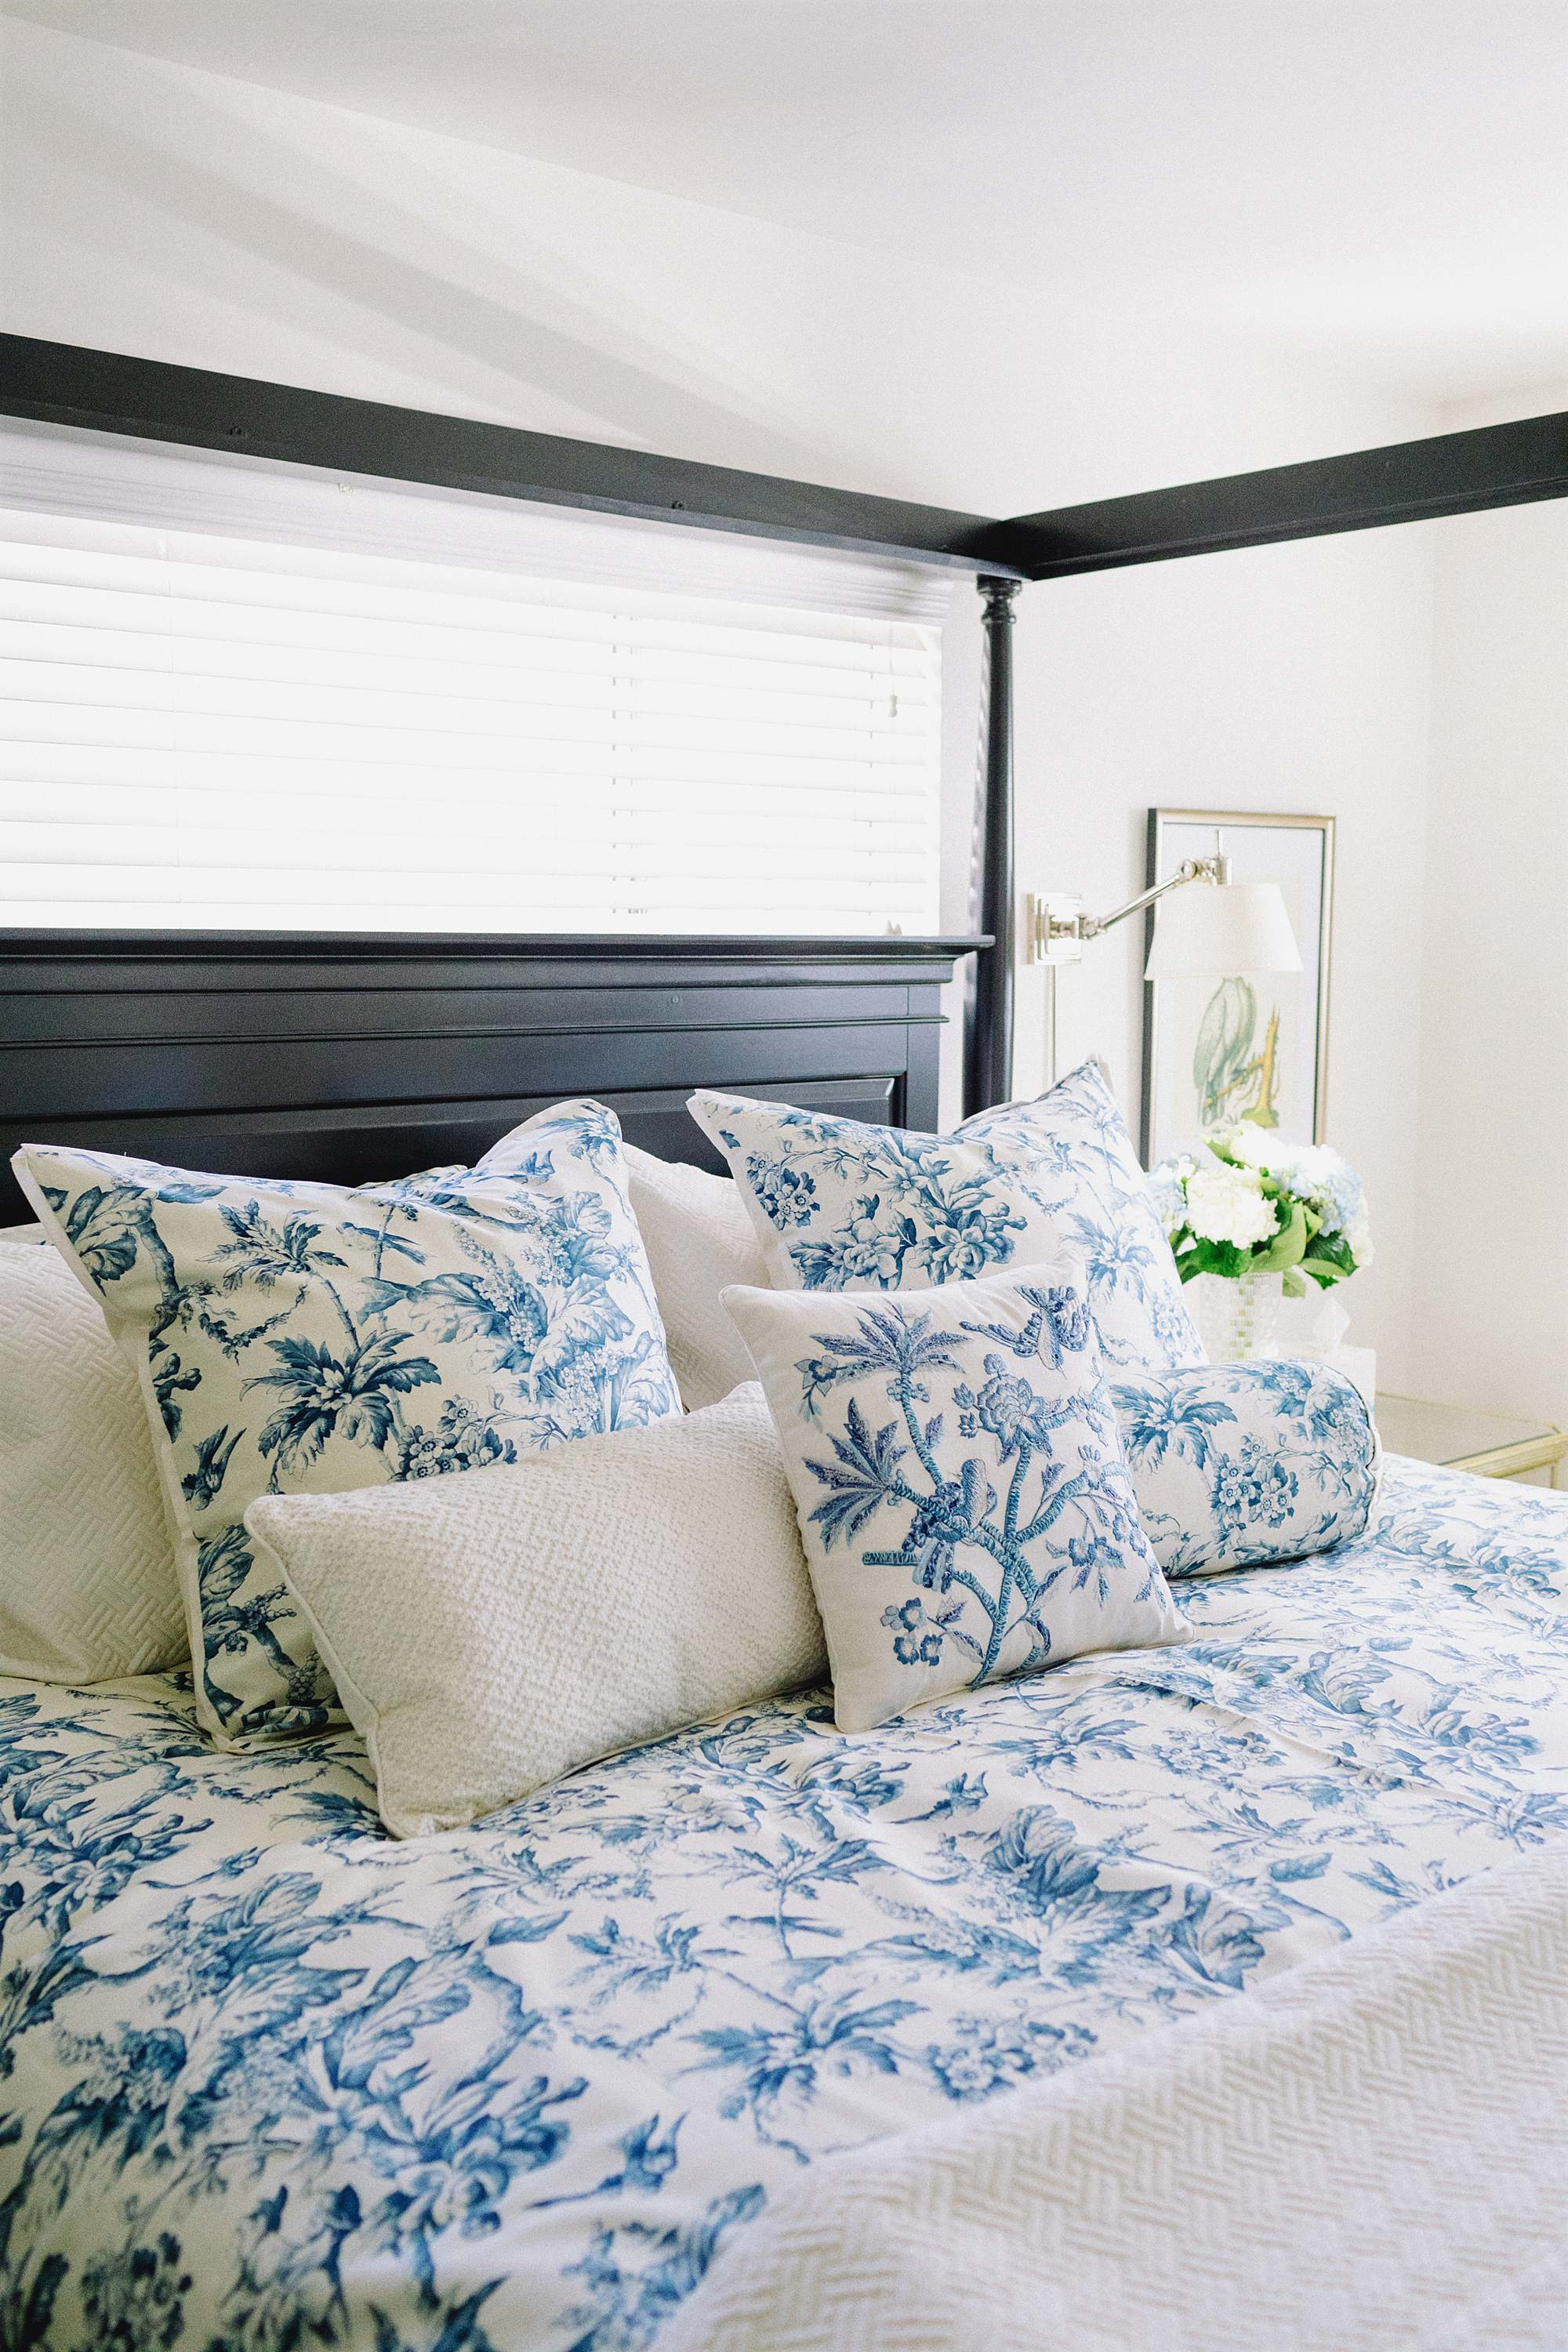 traditional bedroom ideas black canopy bed blue white botanical toile print bedding by Macy's - arizona home blogger traditional home Diana Elizabeth phoenix arizona home blog